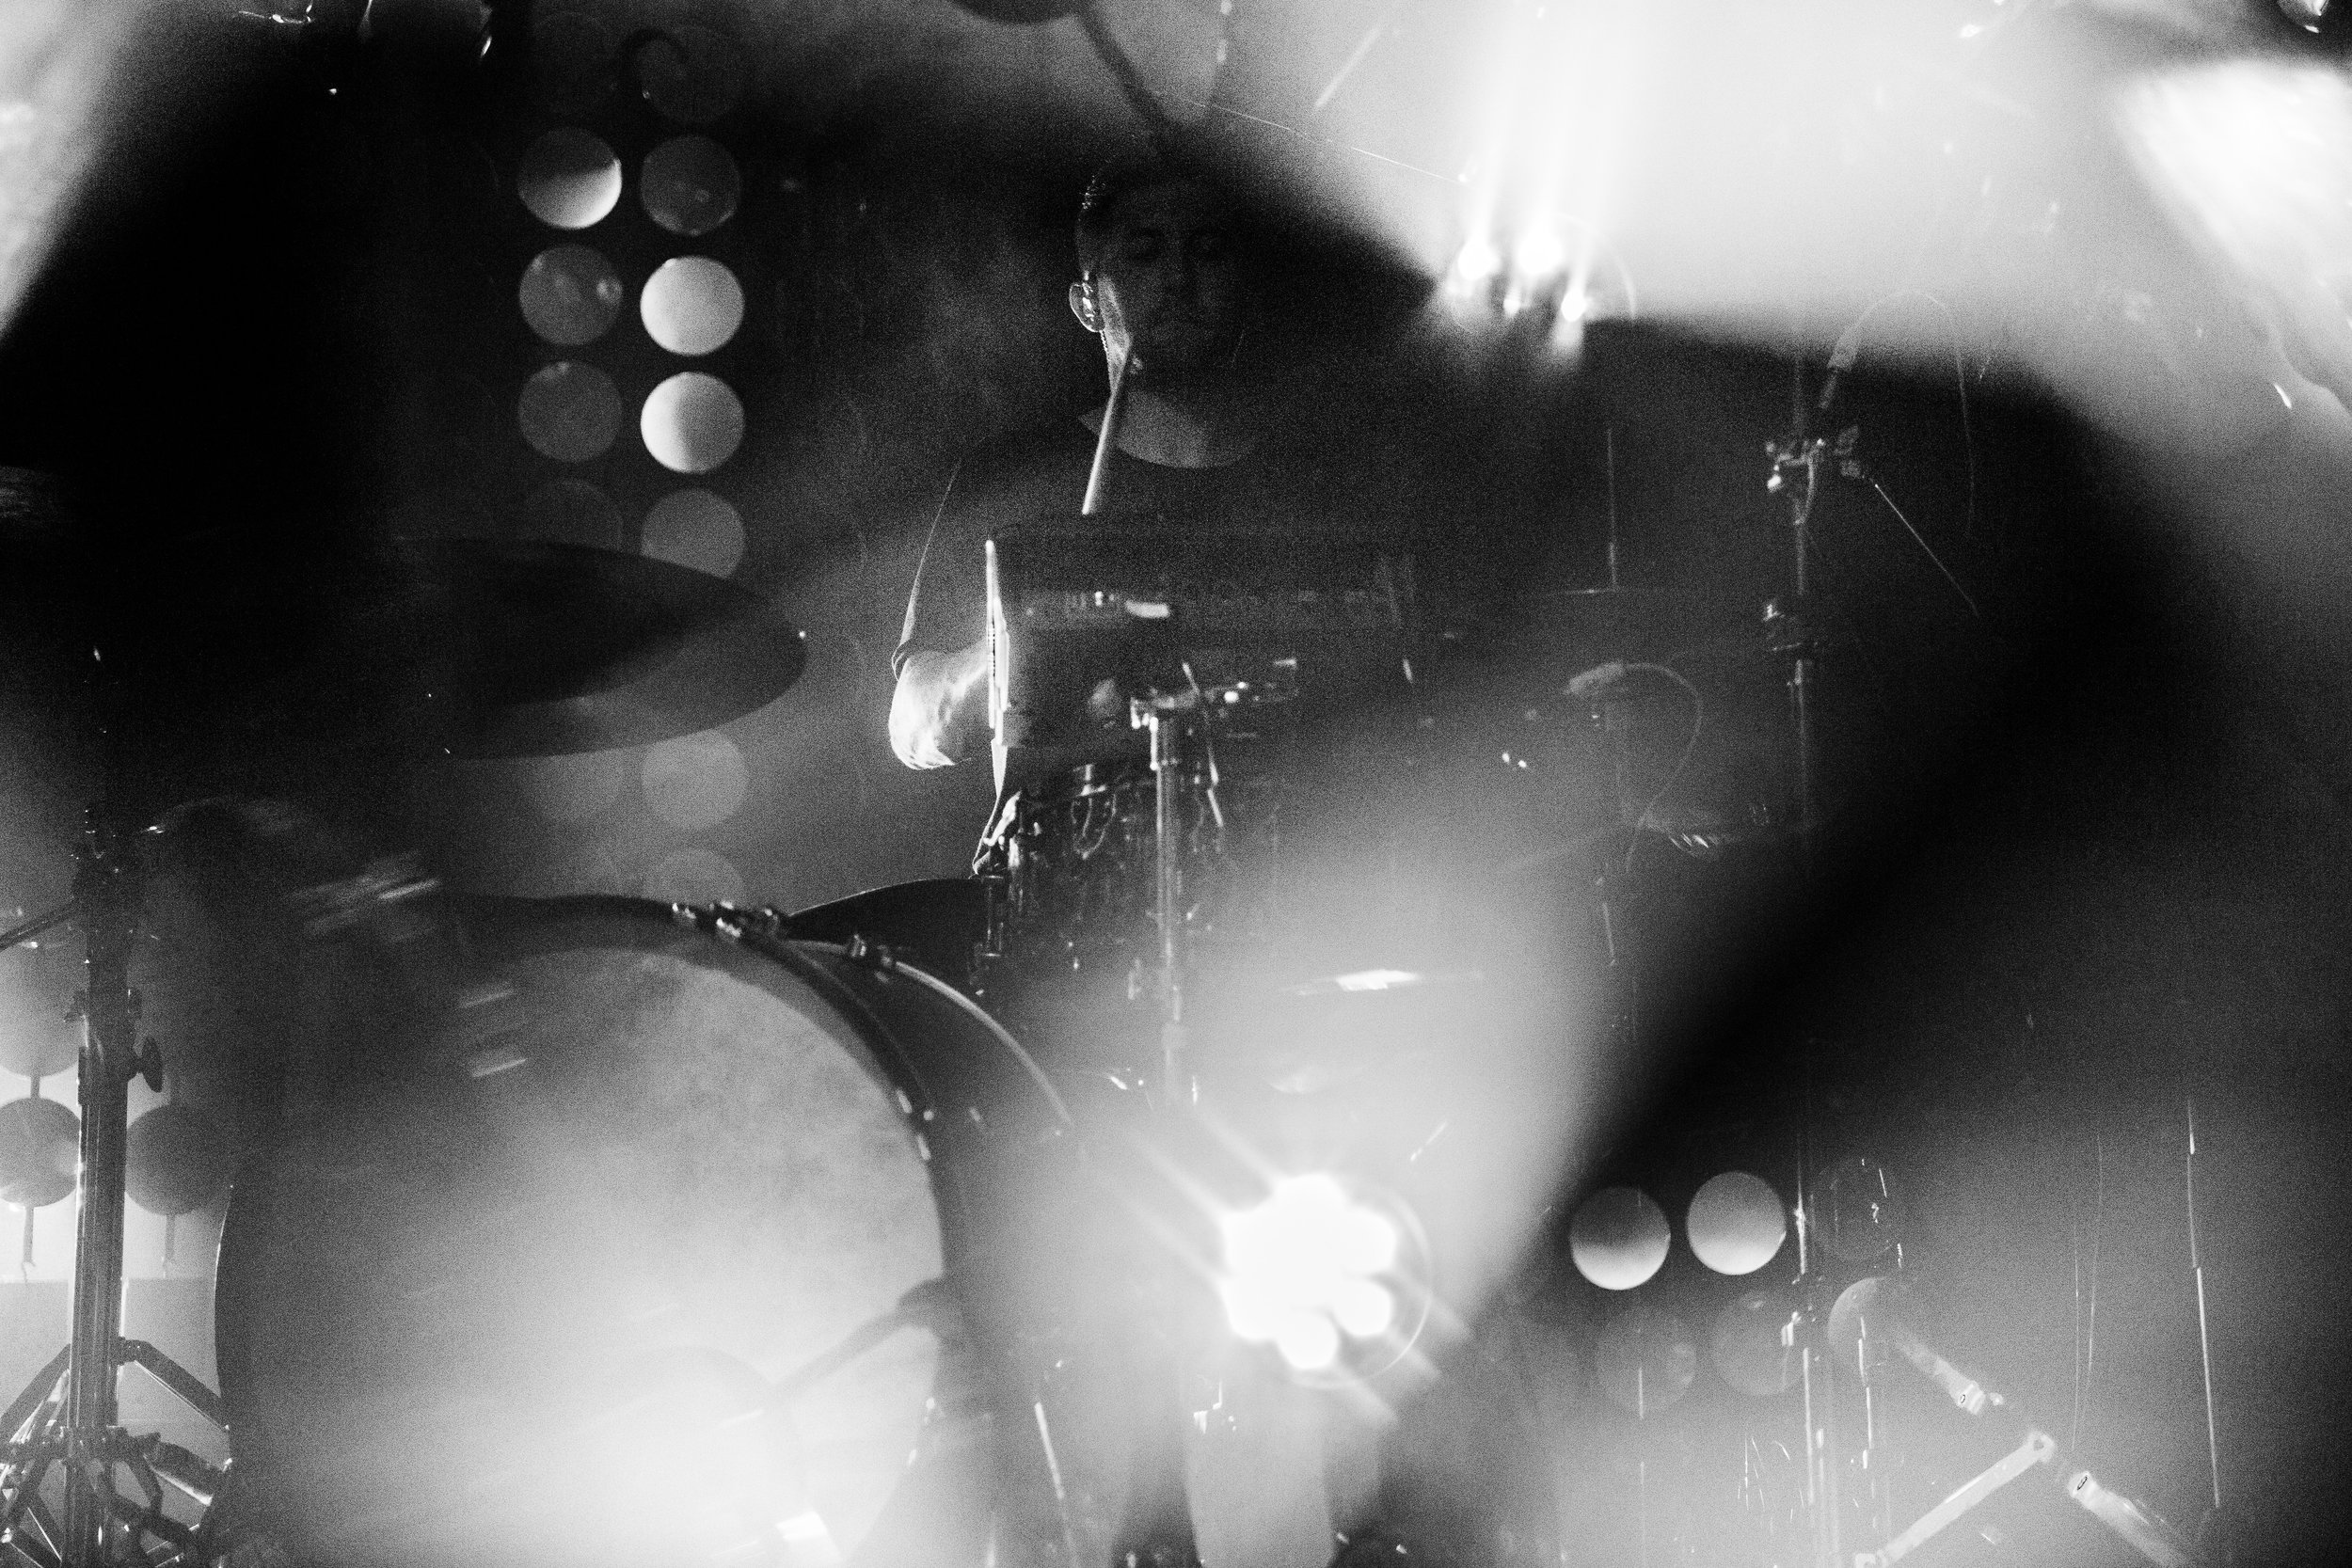 171201-kirby-gladstein-photography-hundred-waters-concert-el-rey-los-angeles-6114.jpg